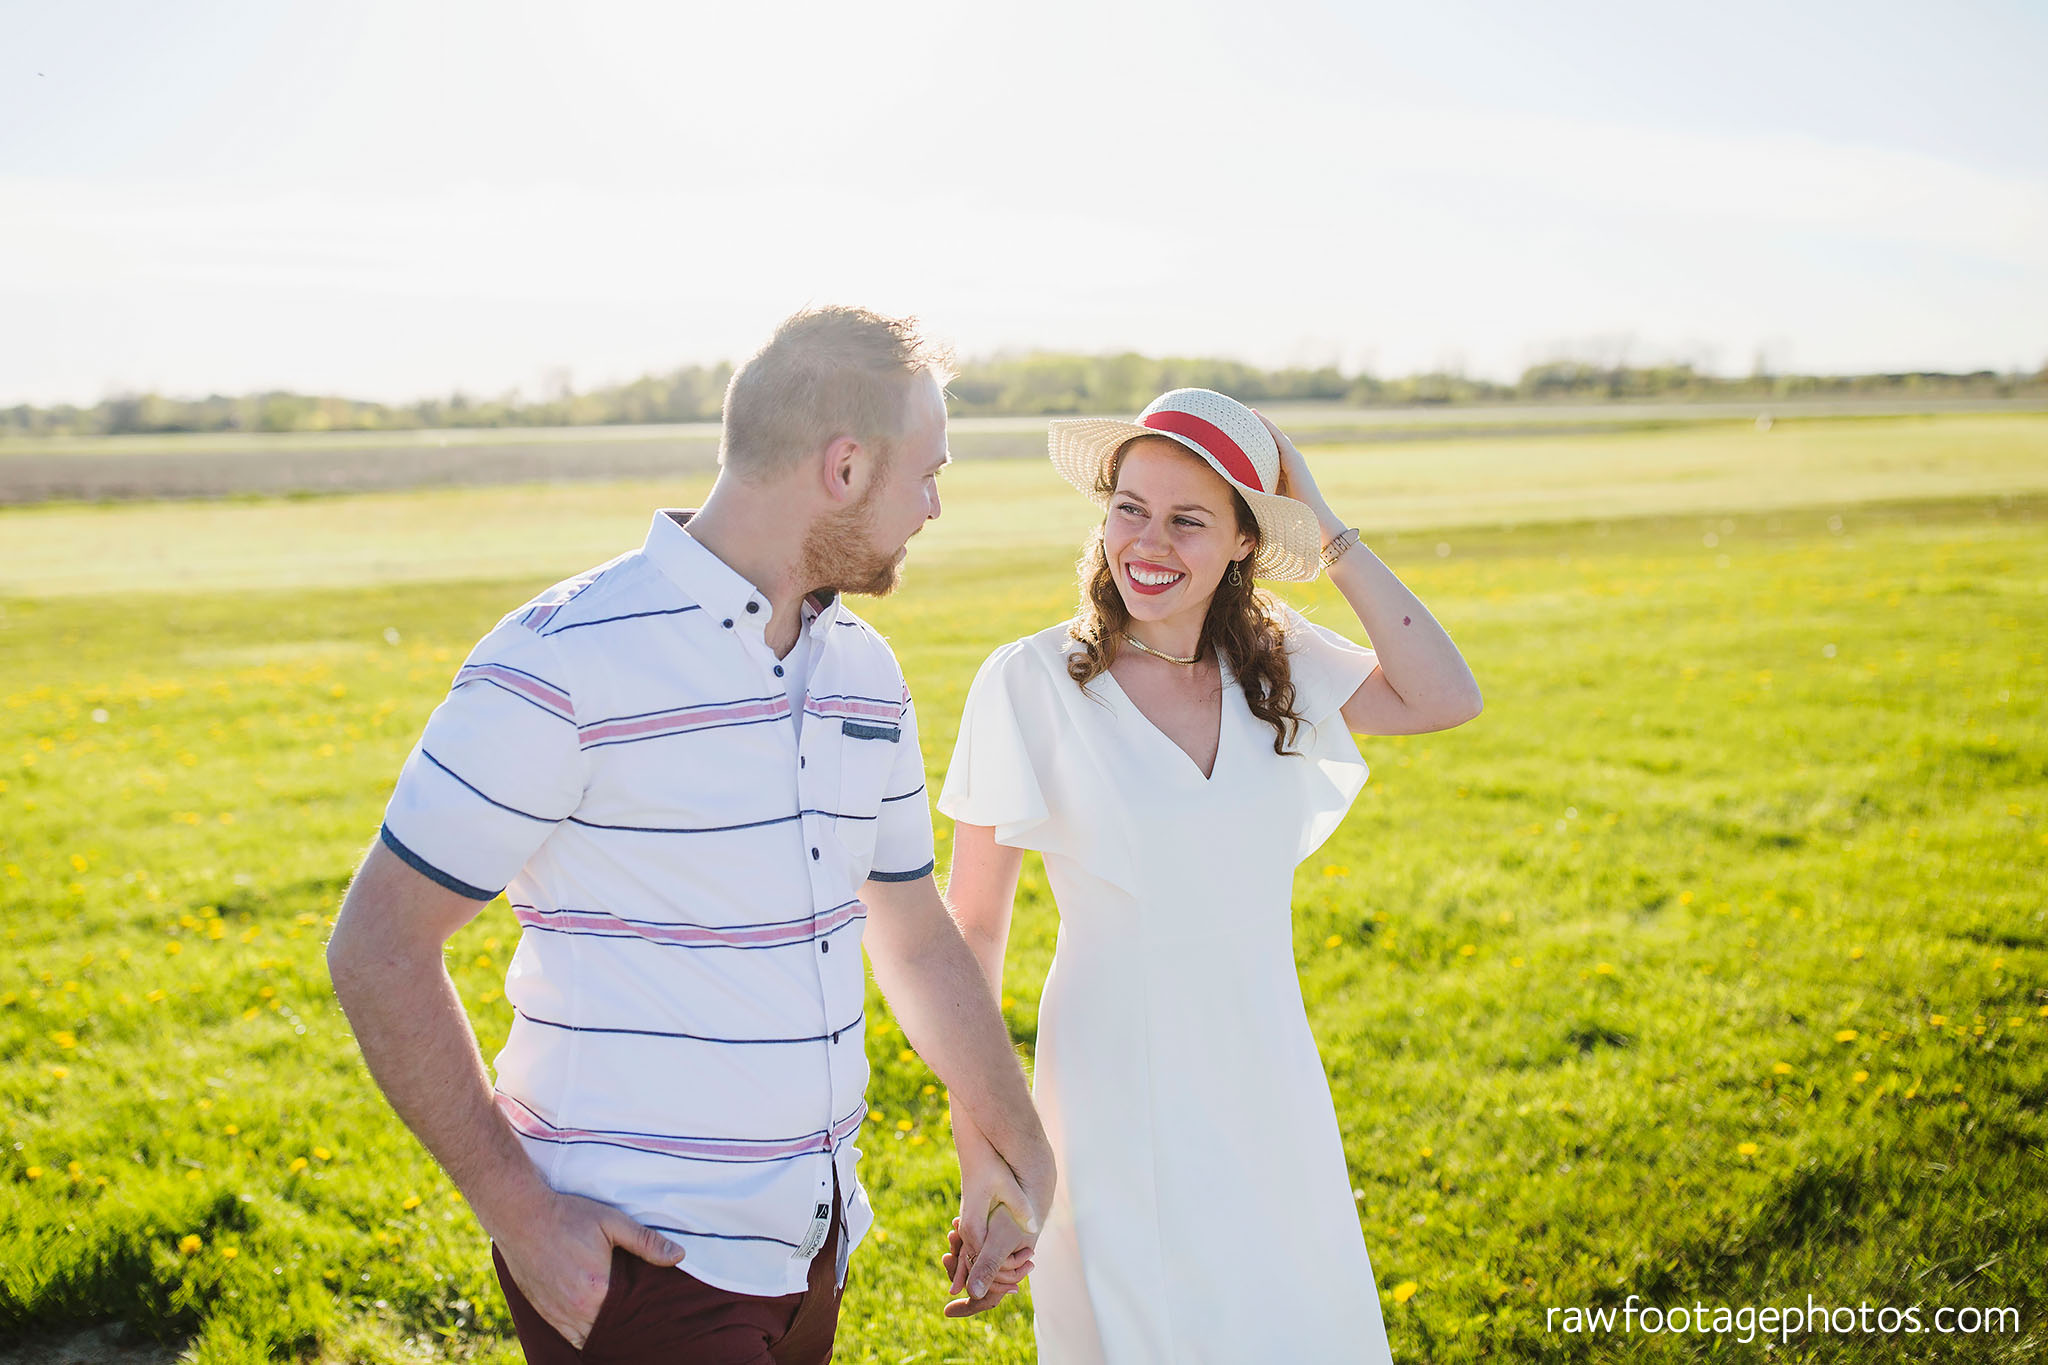 london_ontario_wedding_photographer-raw_footage_photography-engagement_session-airport_session-airplane-balloons-apple_orchard-spring_blooms-apple_blossoms004.jpg